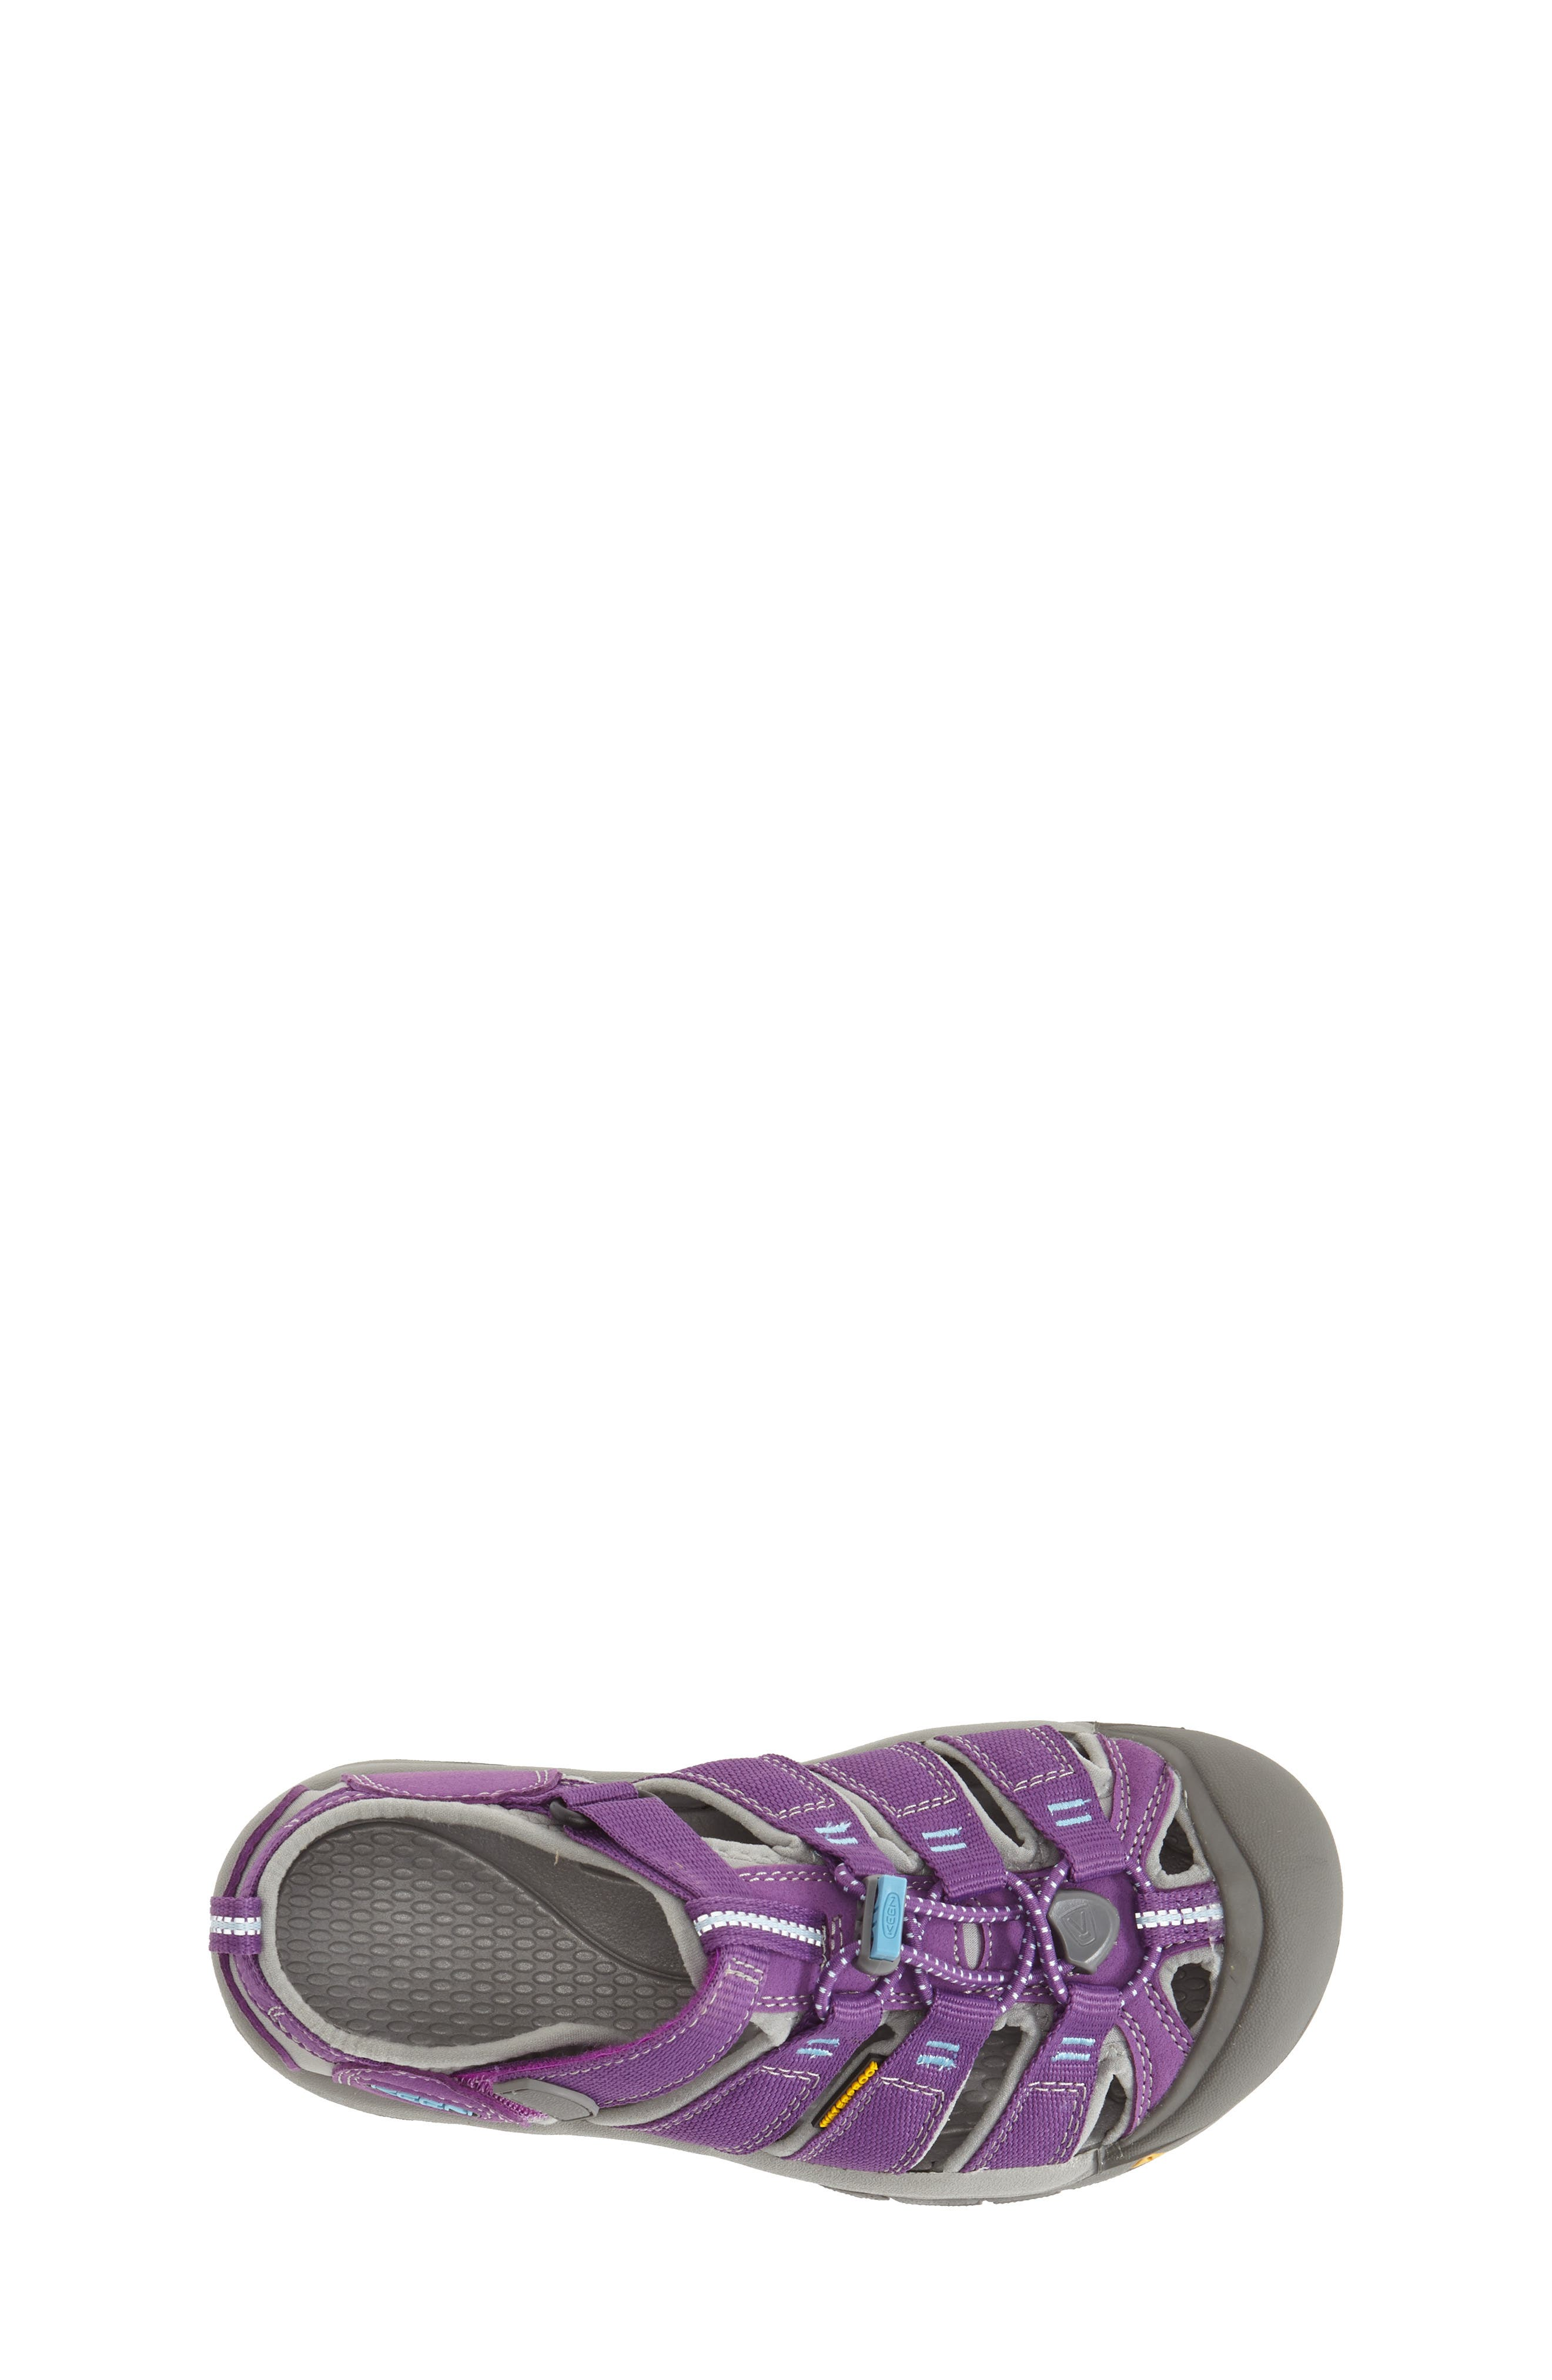 ,                             'Newport H2' Water Friendly Sandal,                             Alternate thumbnail 431, color,                             545